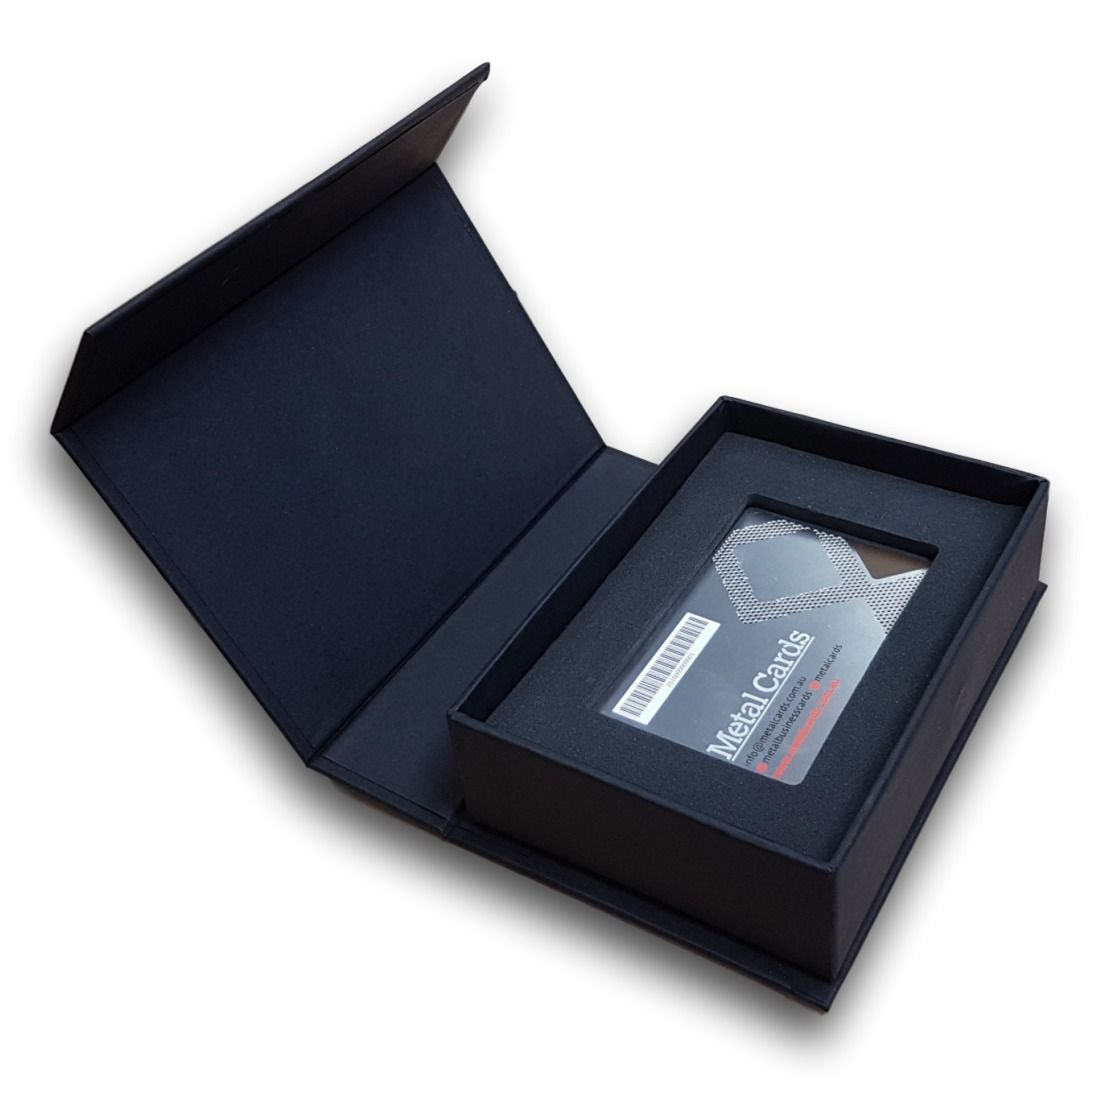 Deluxe Gift Card Credit Card Magnetic Box Produced By Duncan